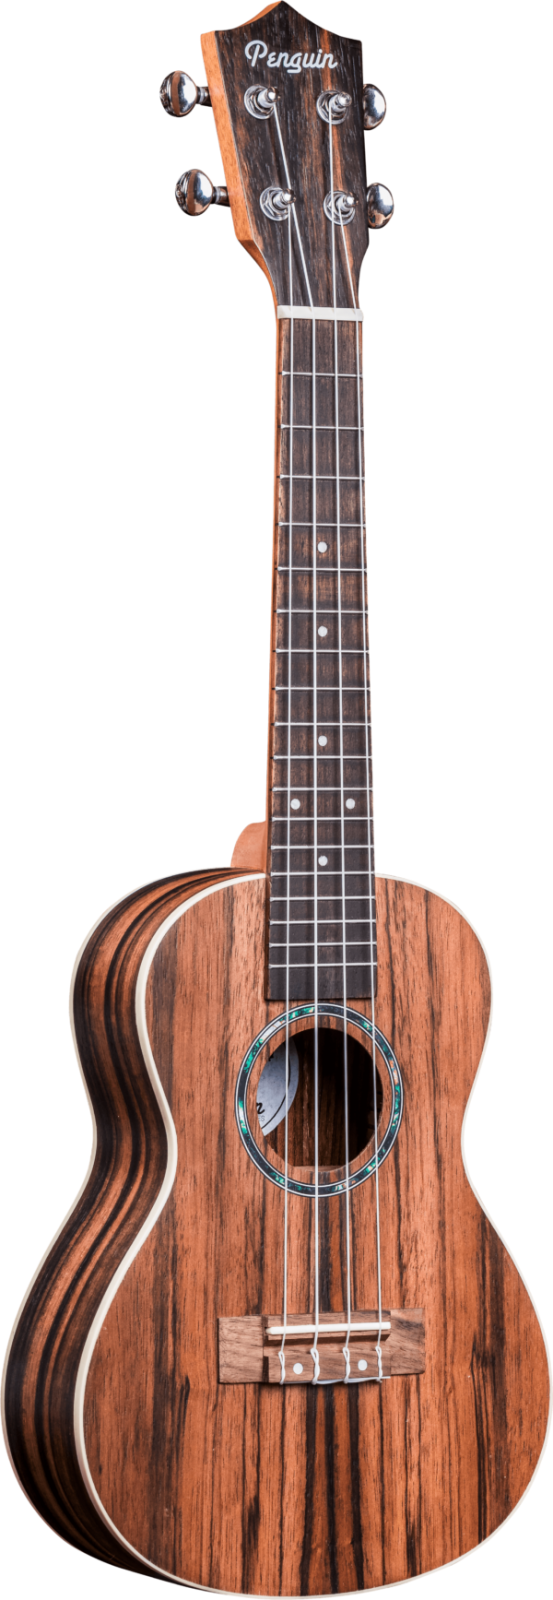 Penguin PGUK990c Ebony  Wood Concert Uke w bag